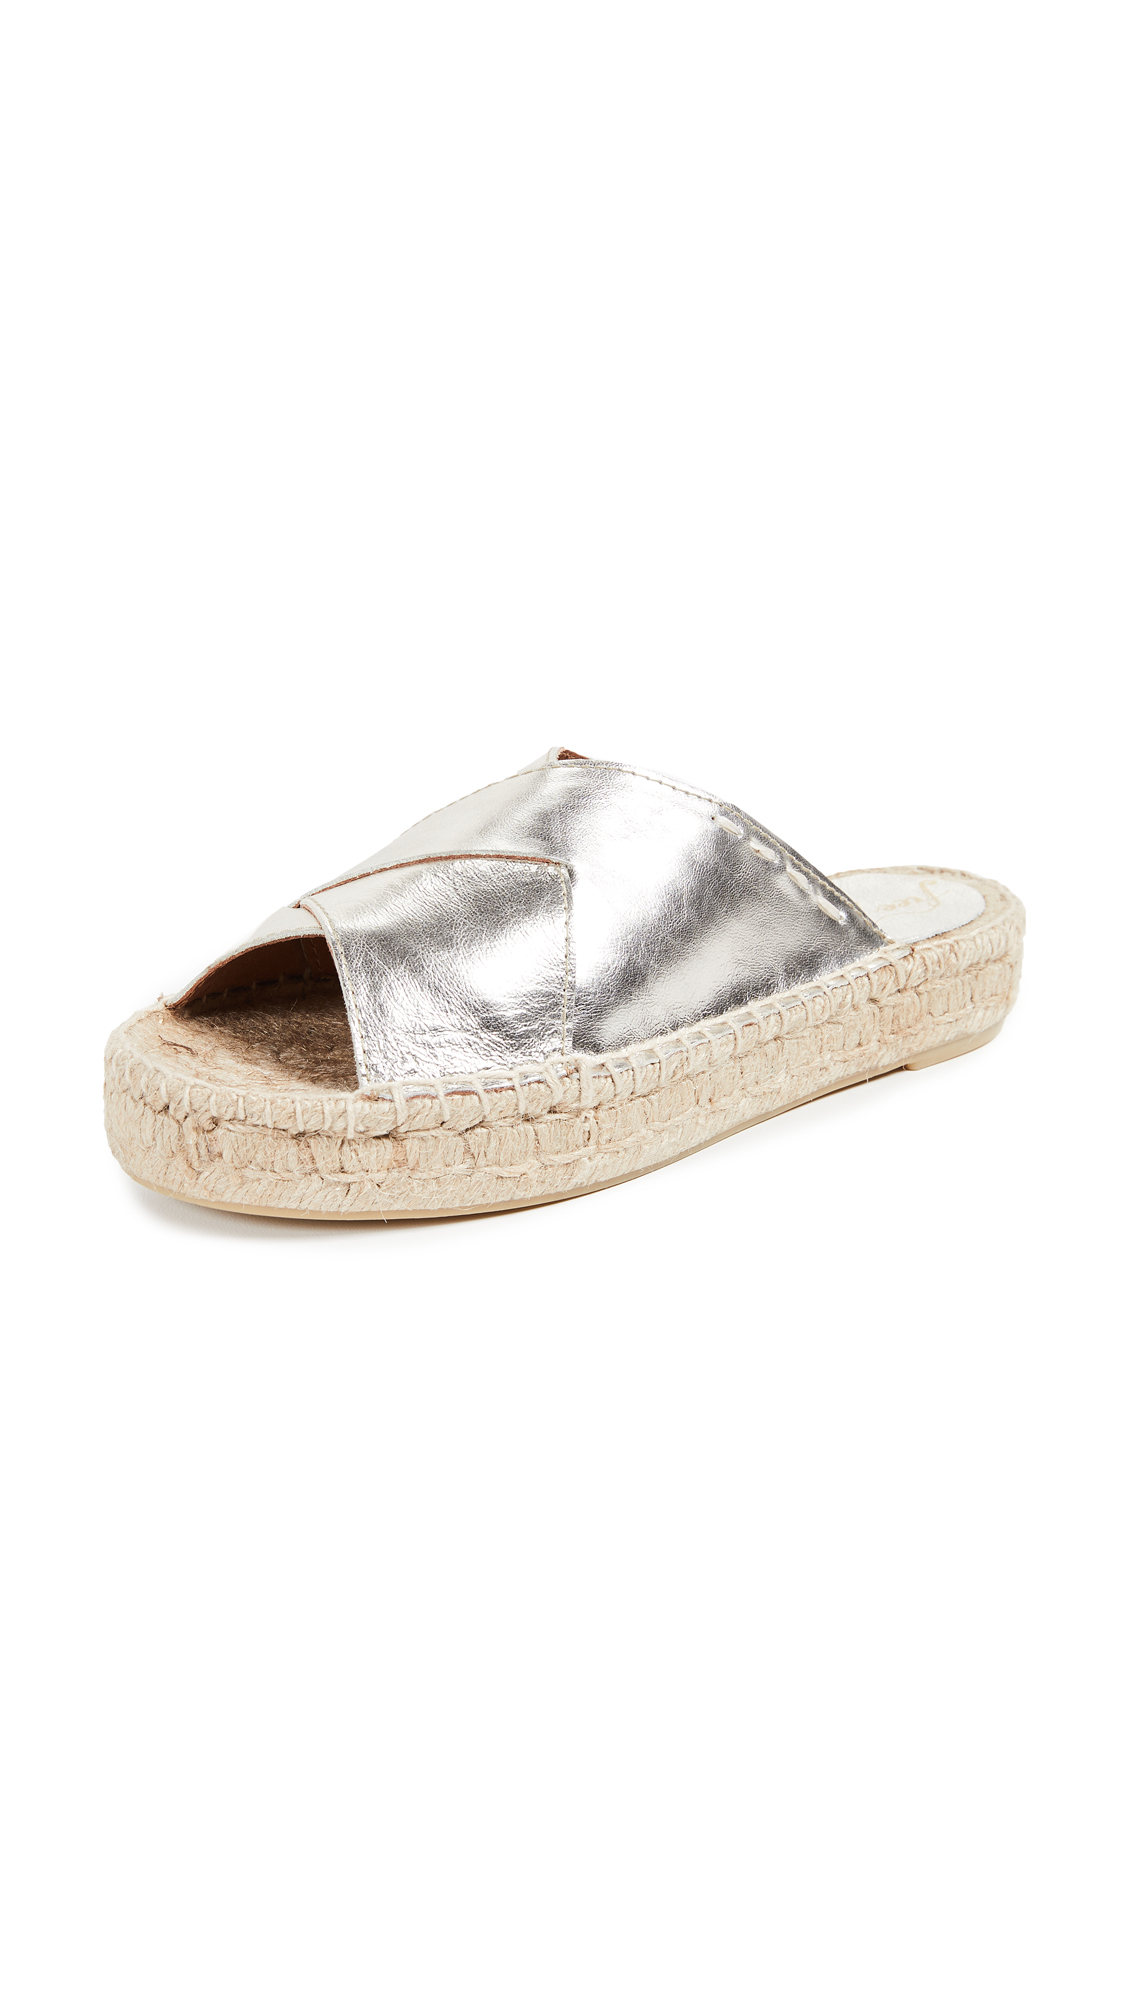 Free People Tuscan Slip On Espadrilles In Silver